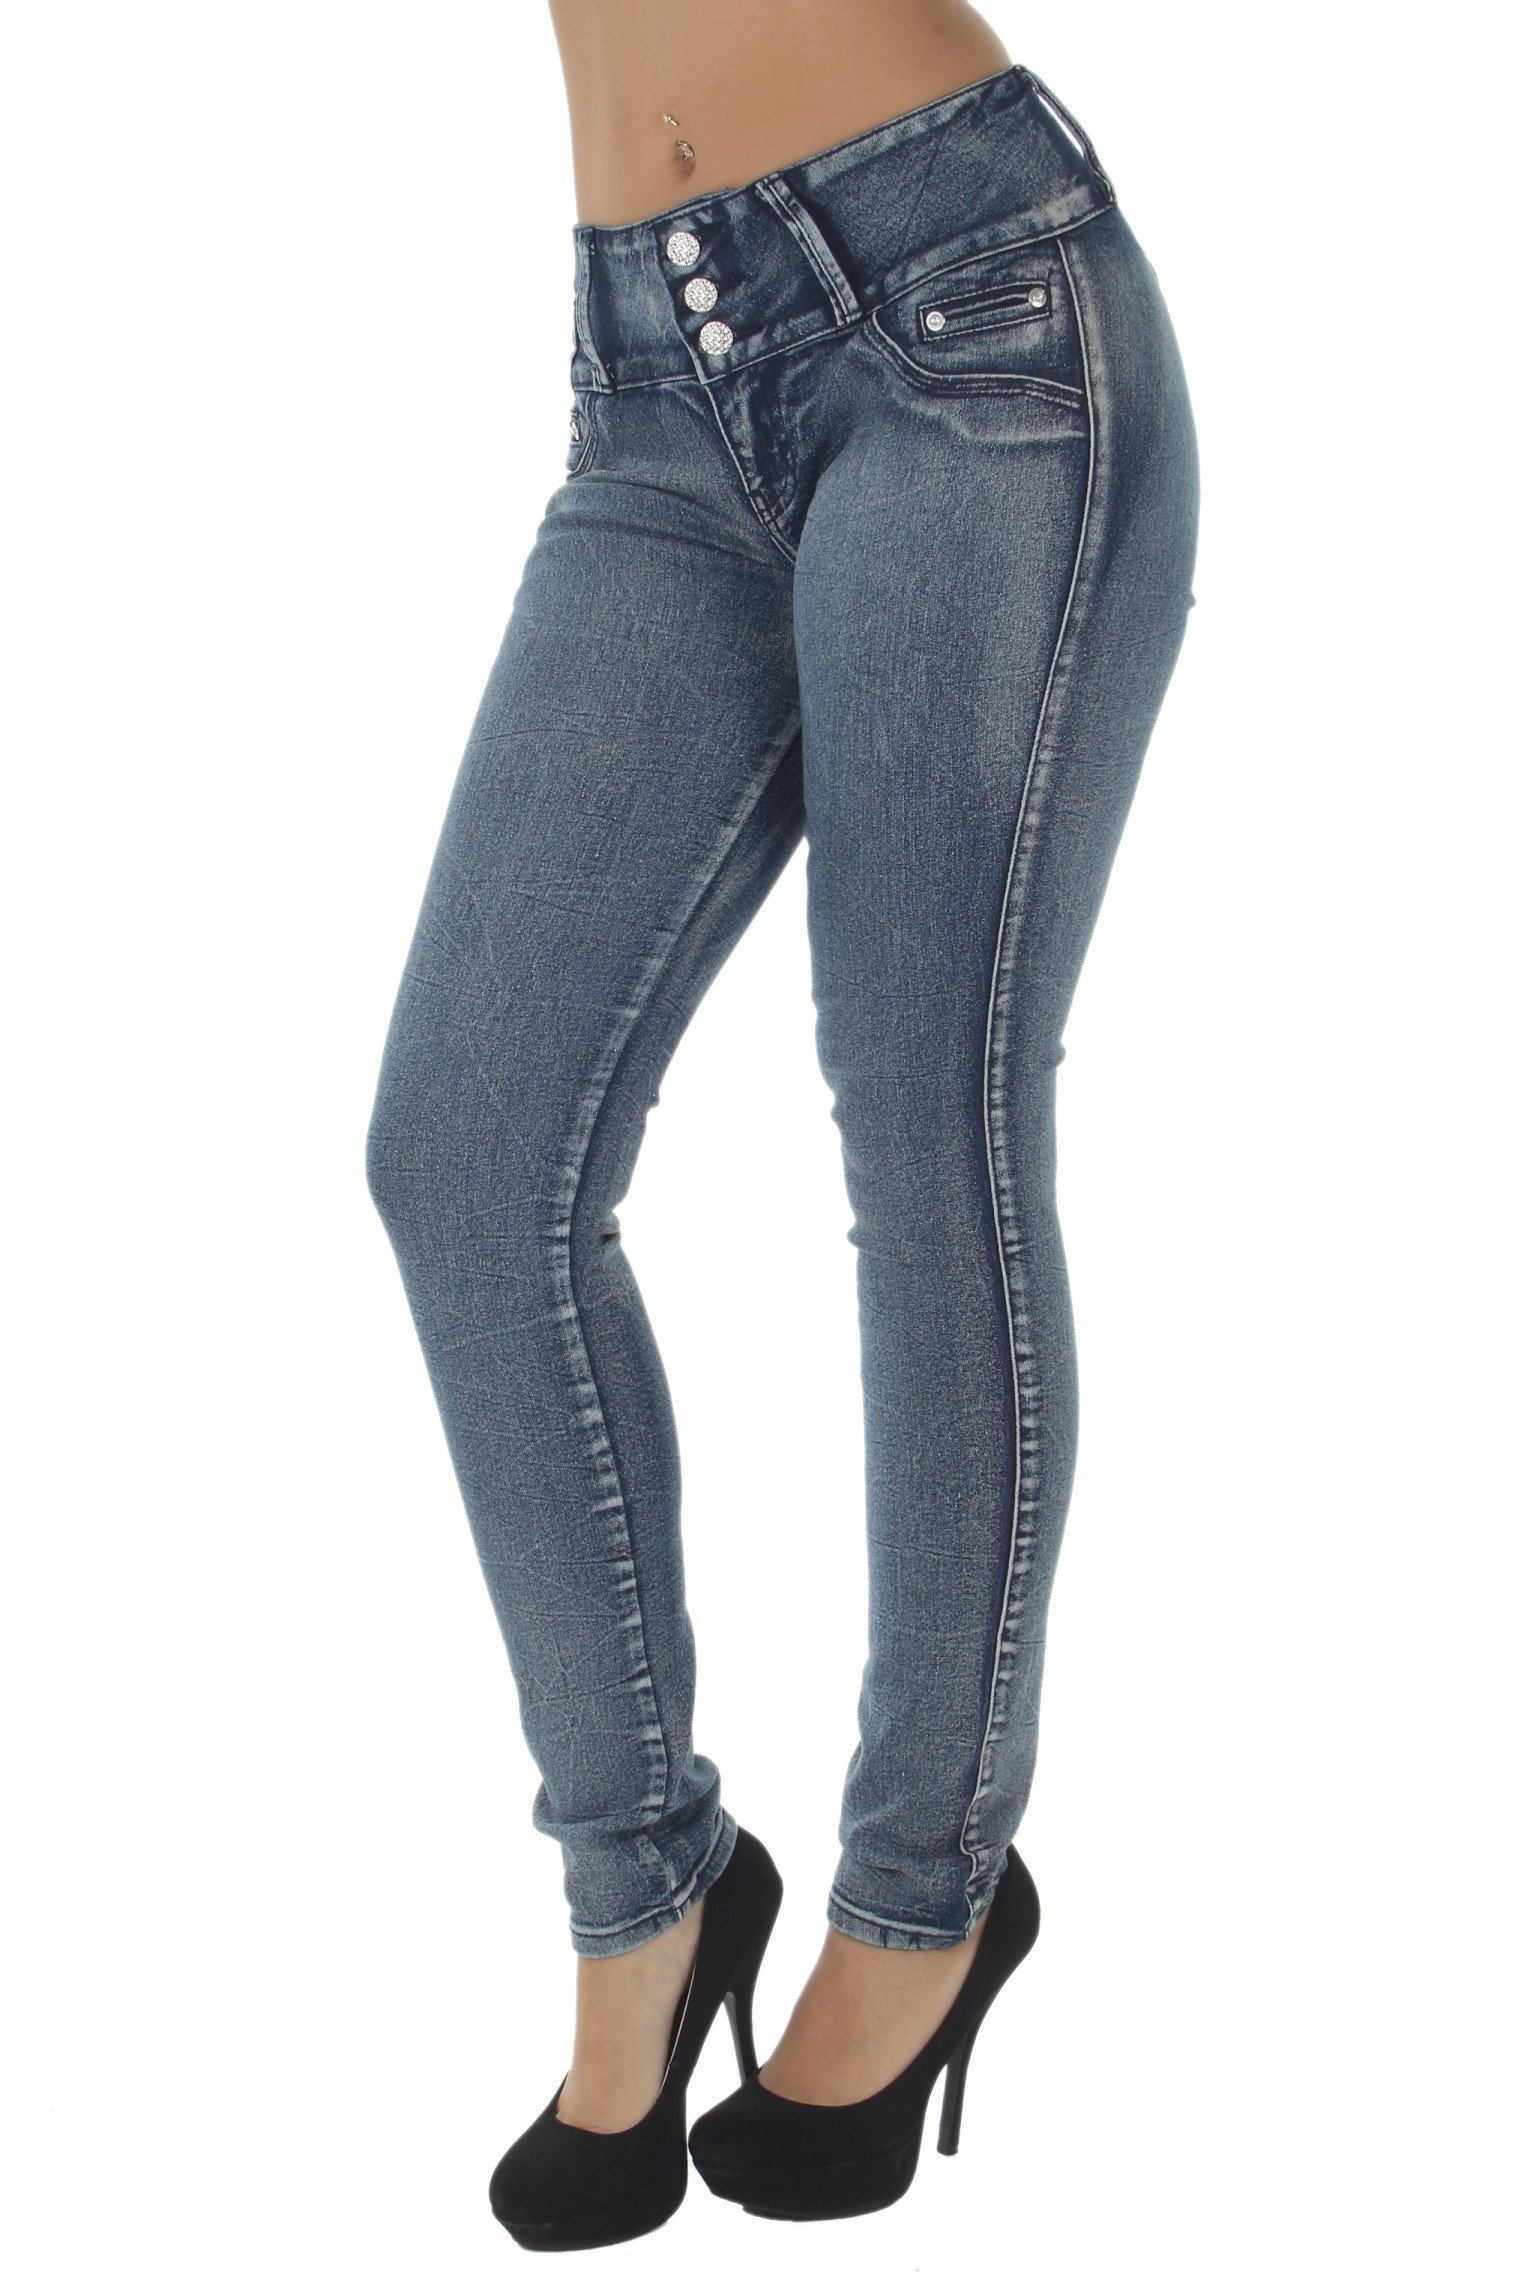 Style E241 – Colombian Design, Mid Waist, Butt Lift, Skinny Jeans in M. Blue Size 0